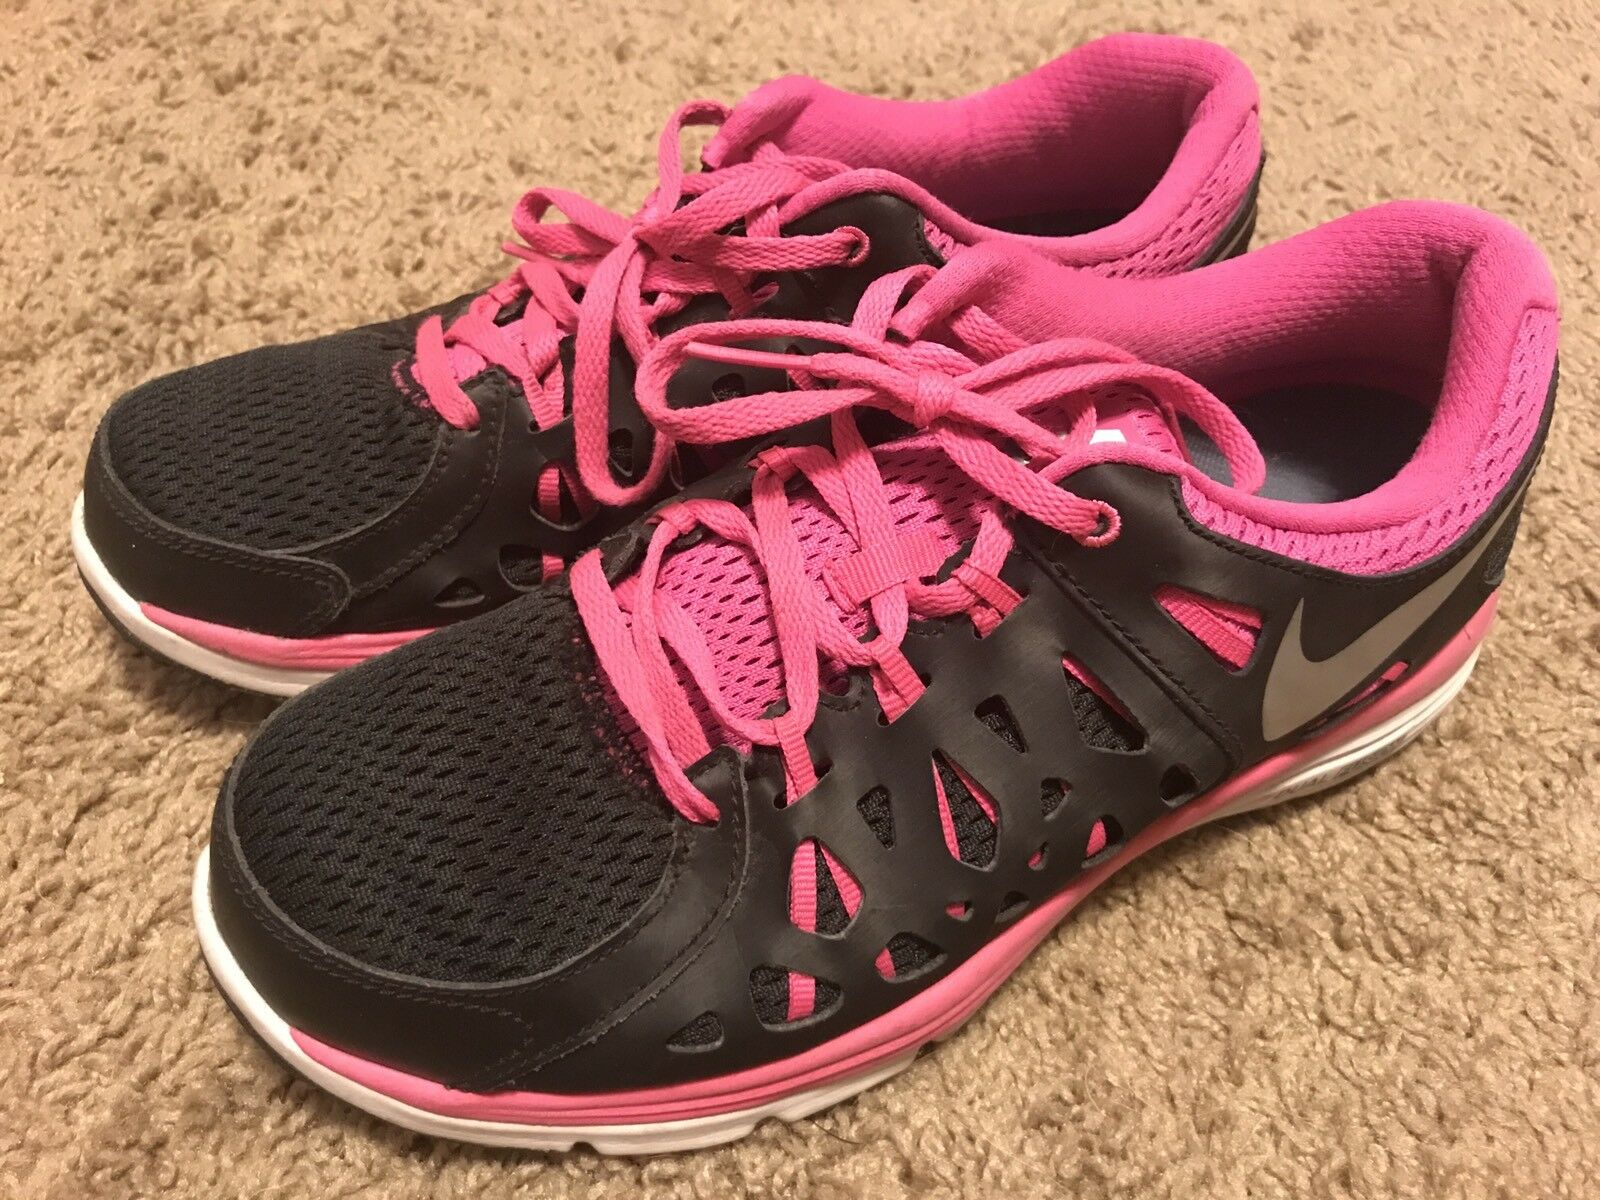 nike s running shoes black pink size 9 cad 24 59